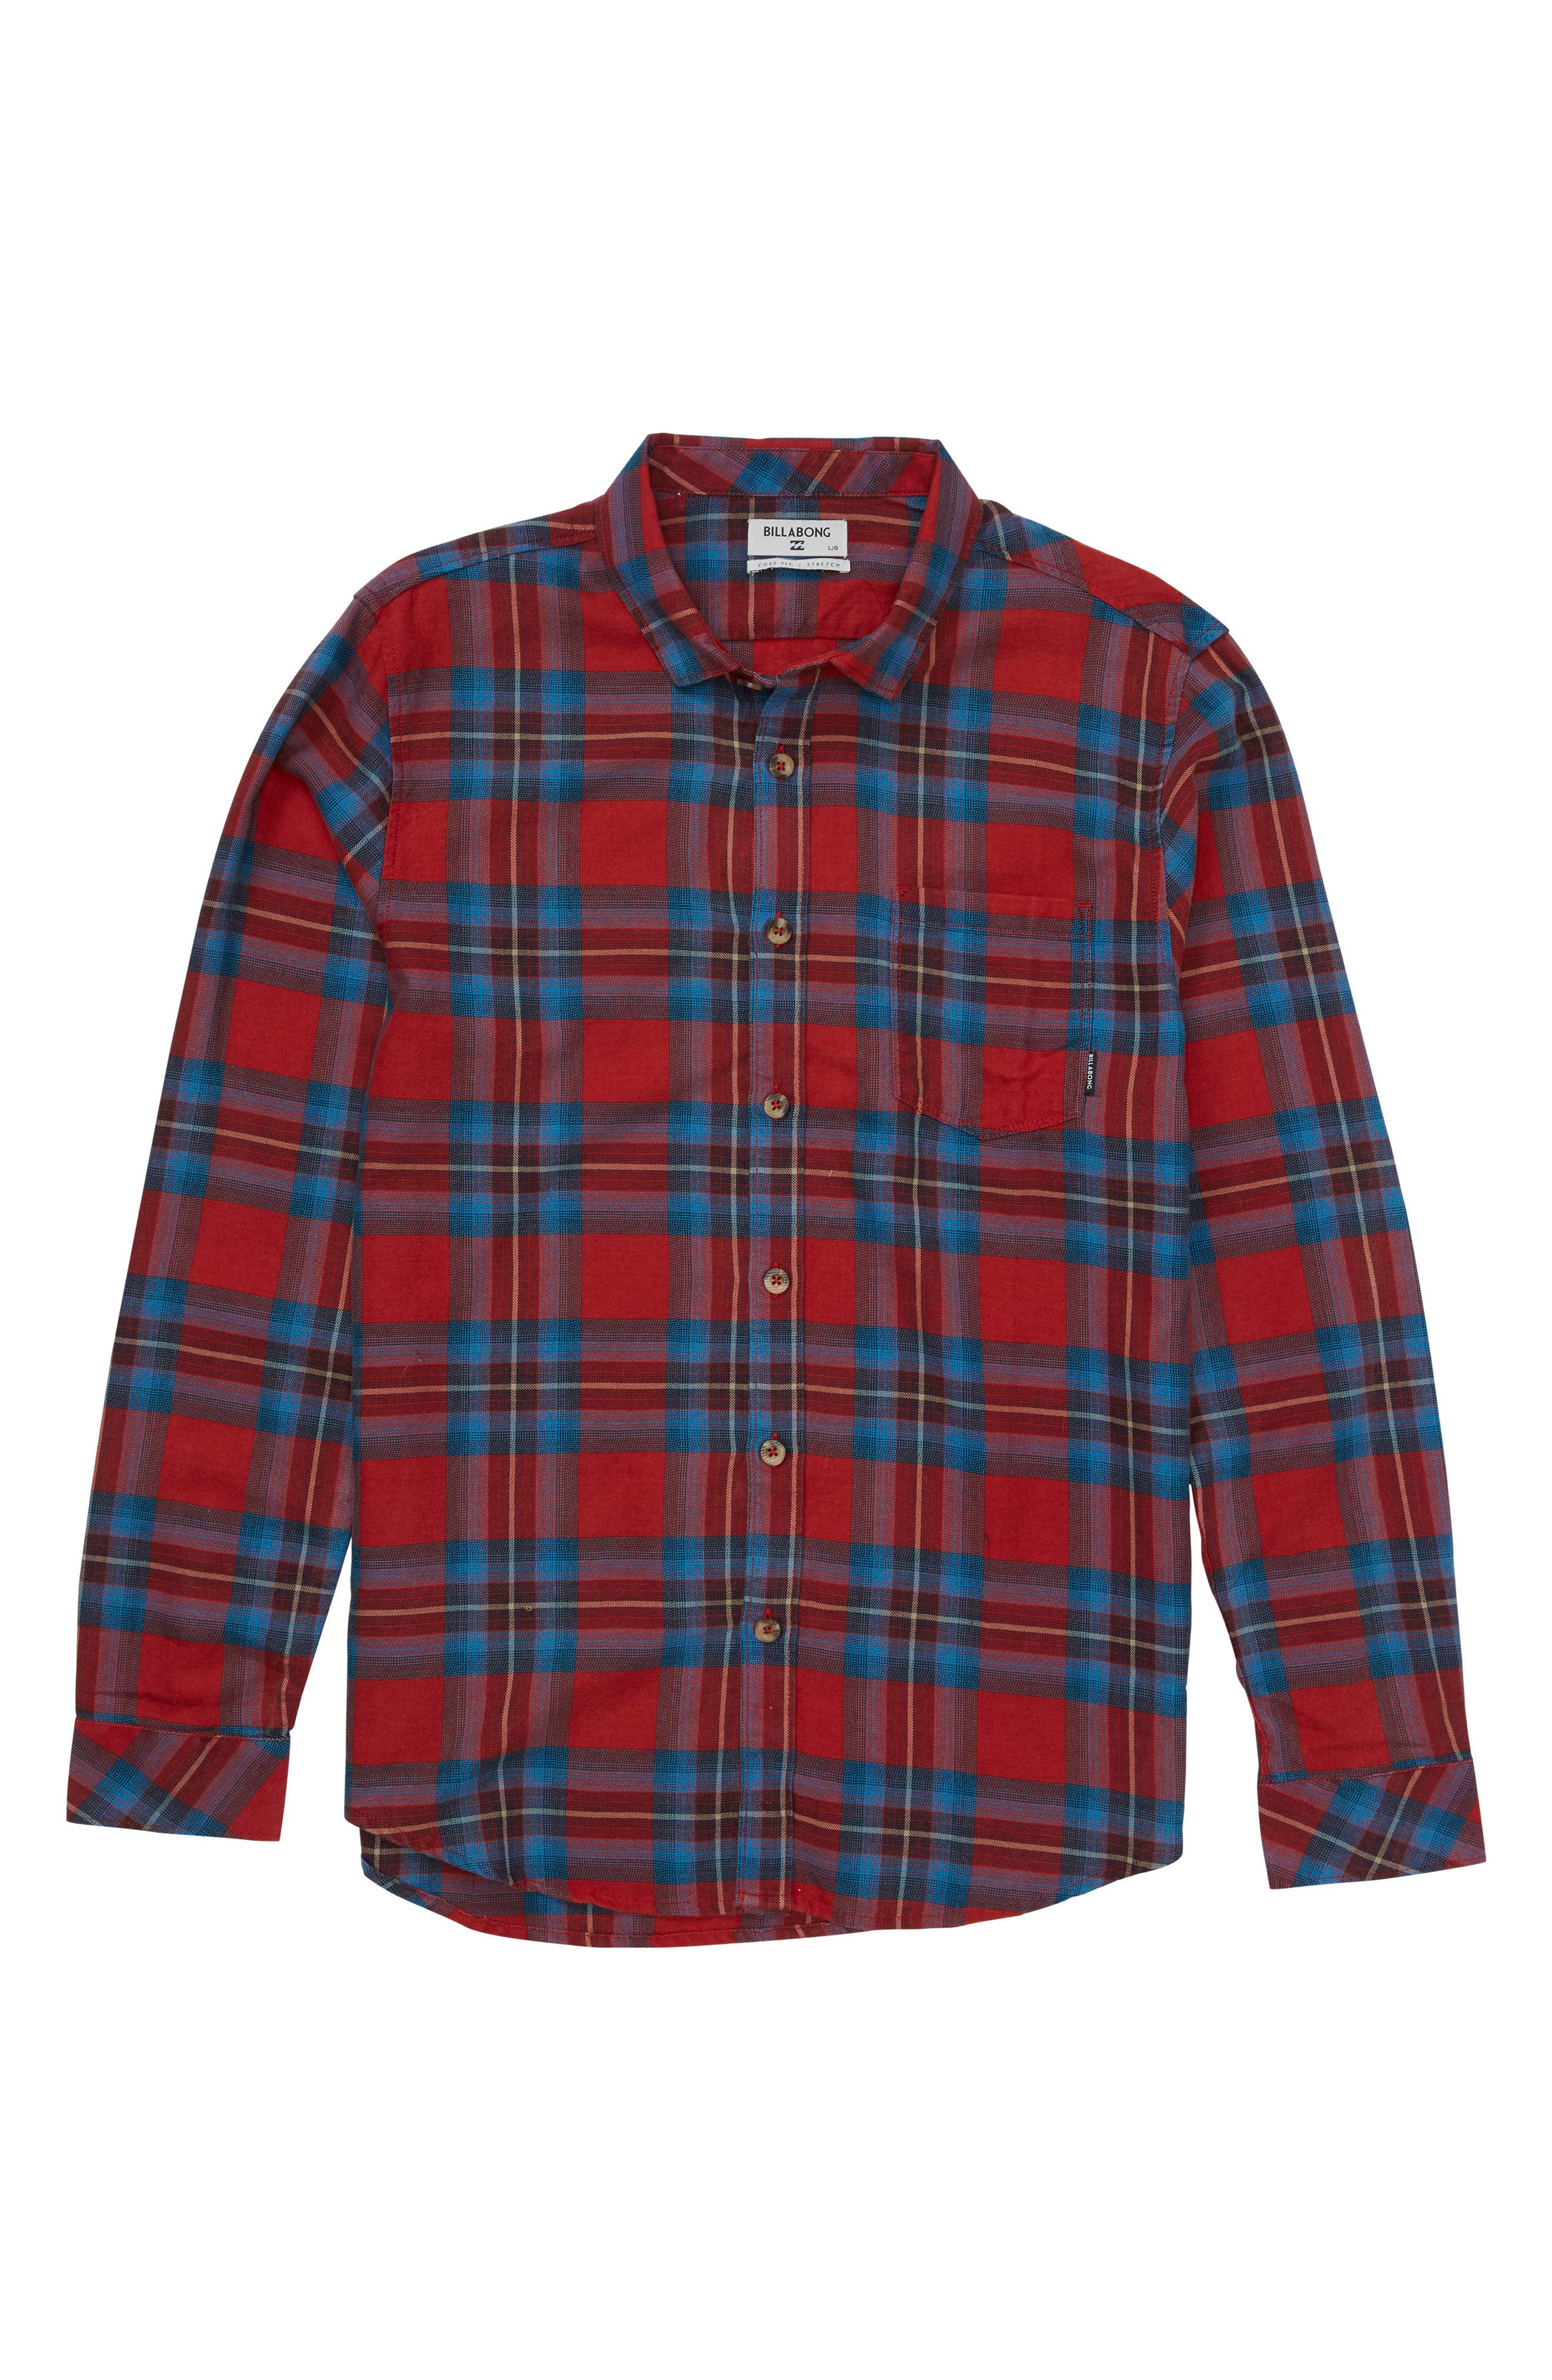 Billabong Freemont Plaid Flannel Shirt (Big Boys)